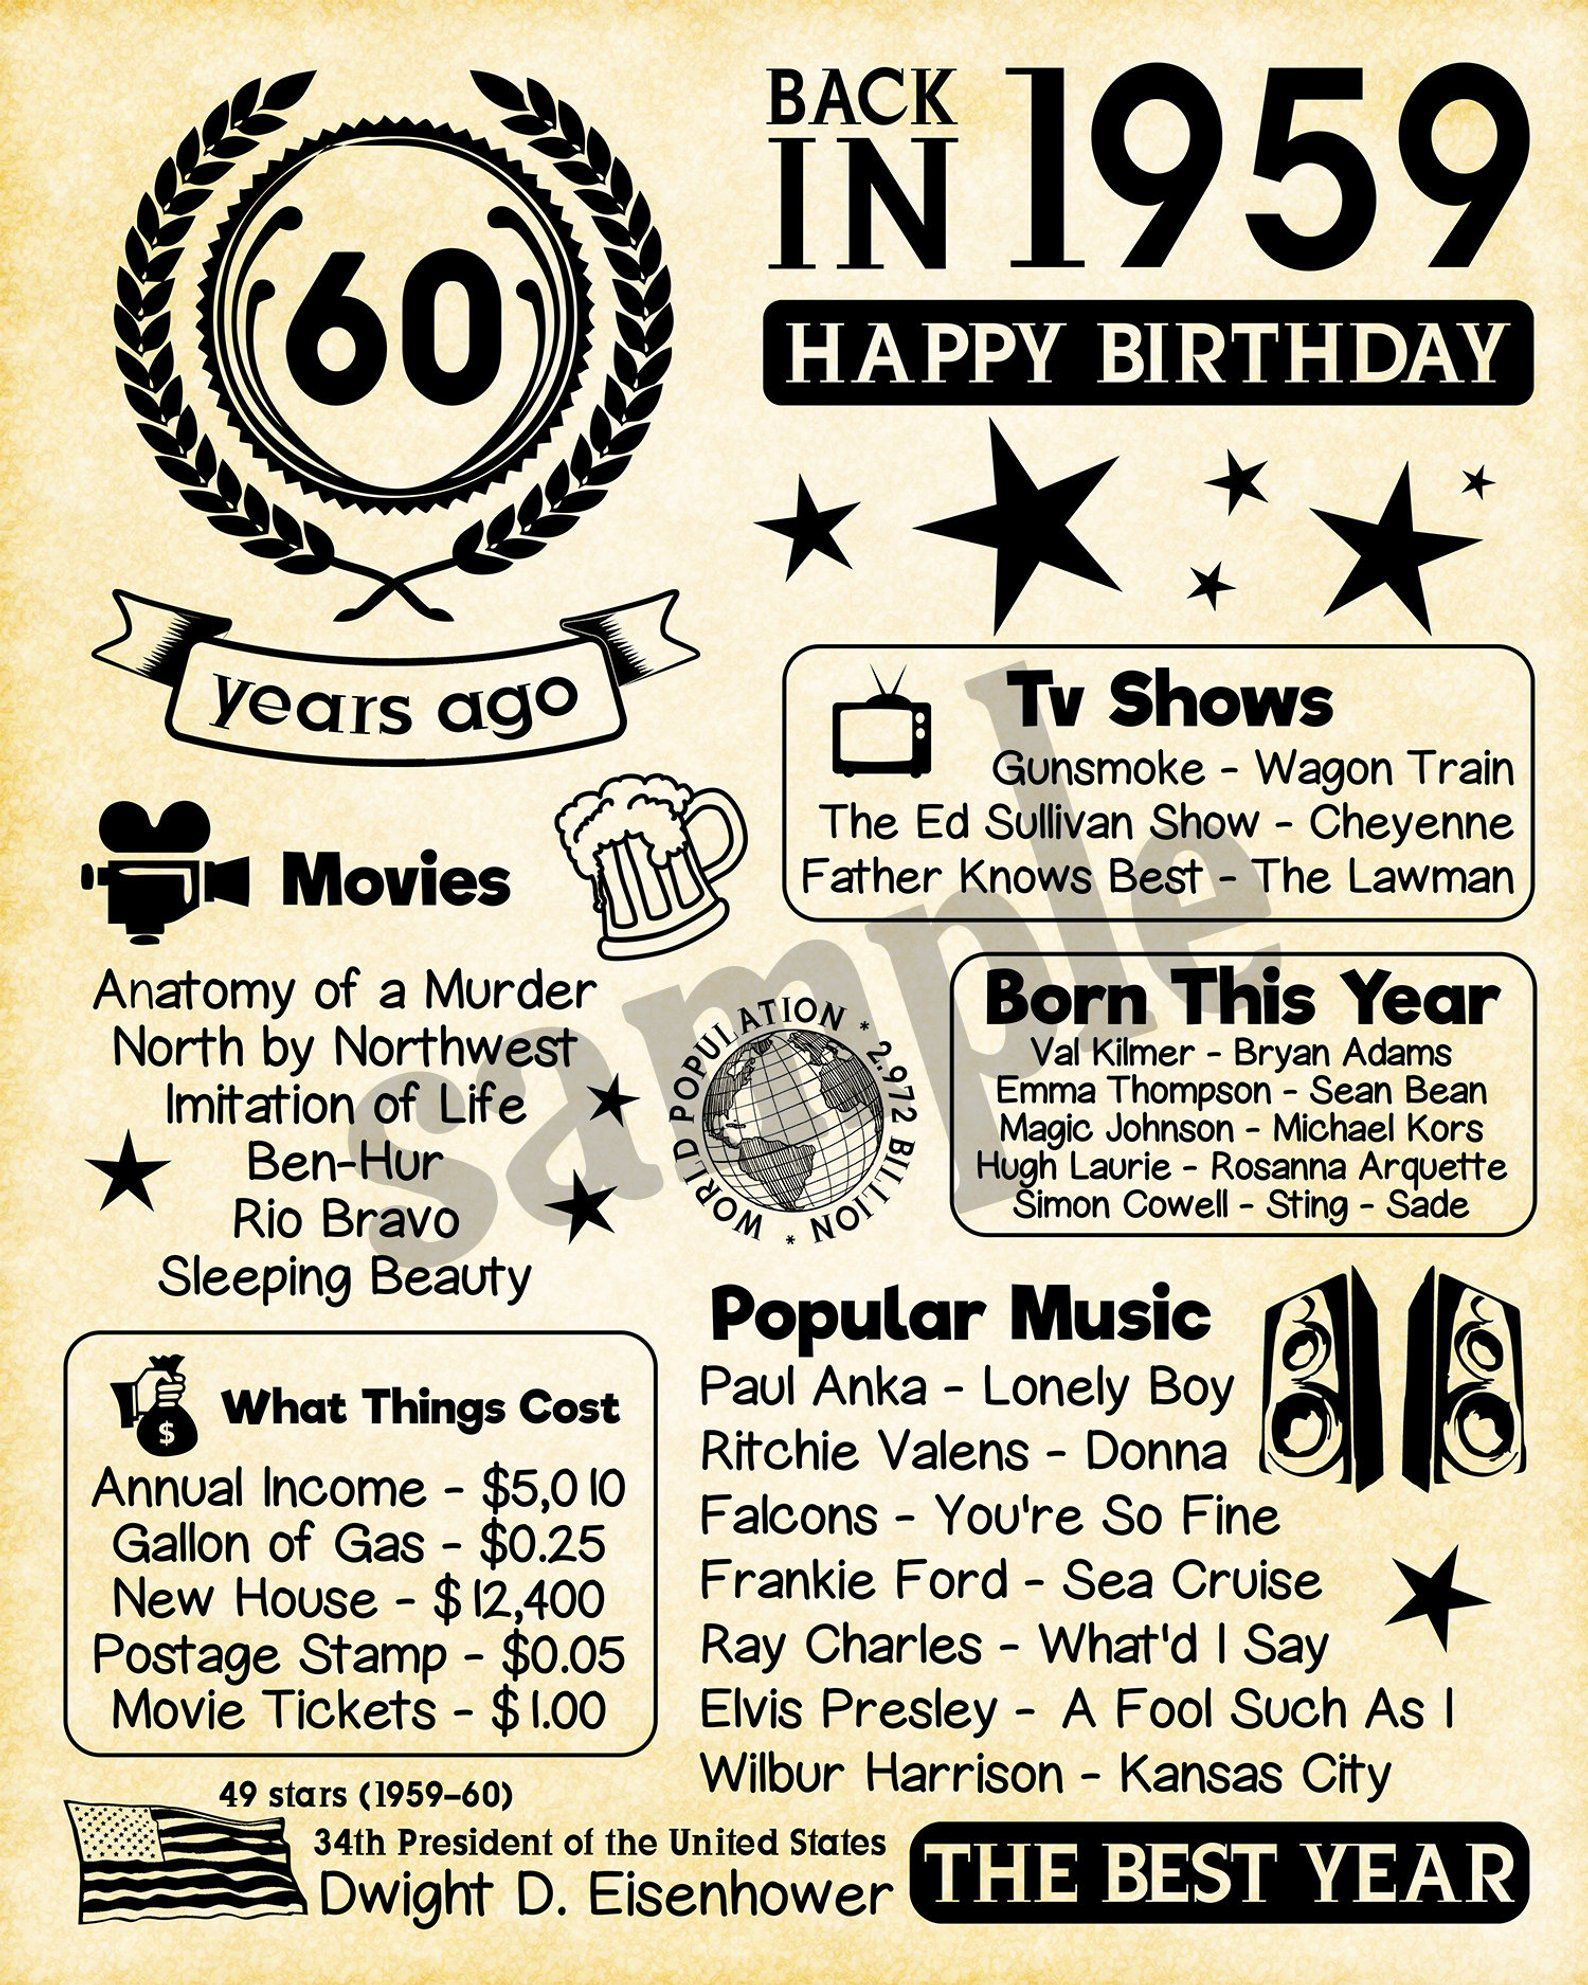 1959 Fun Facts 1959 60th Birthday Gift For Husband Gift For Dad Father For Parents 60th Birthday Ideas For Dad 60th Birthday Ideas For Mom Dad Birthday